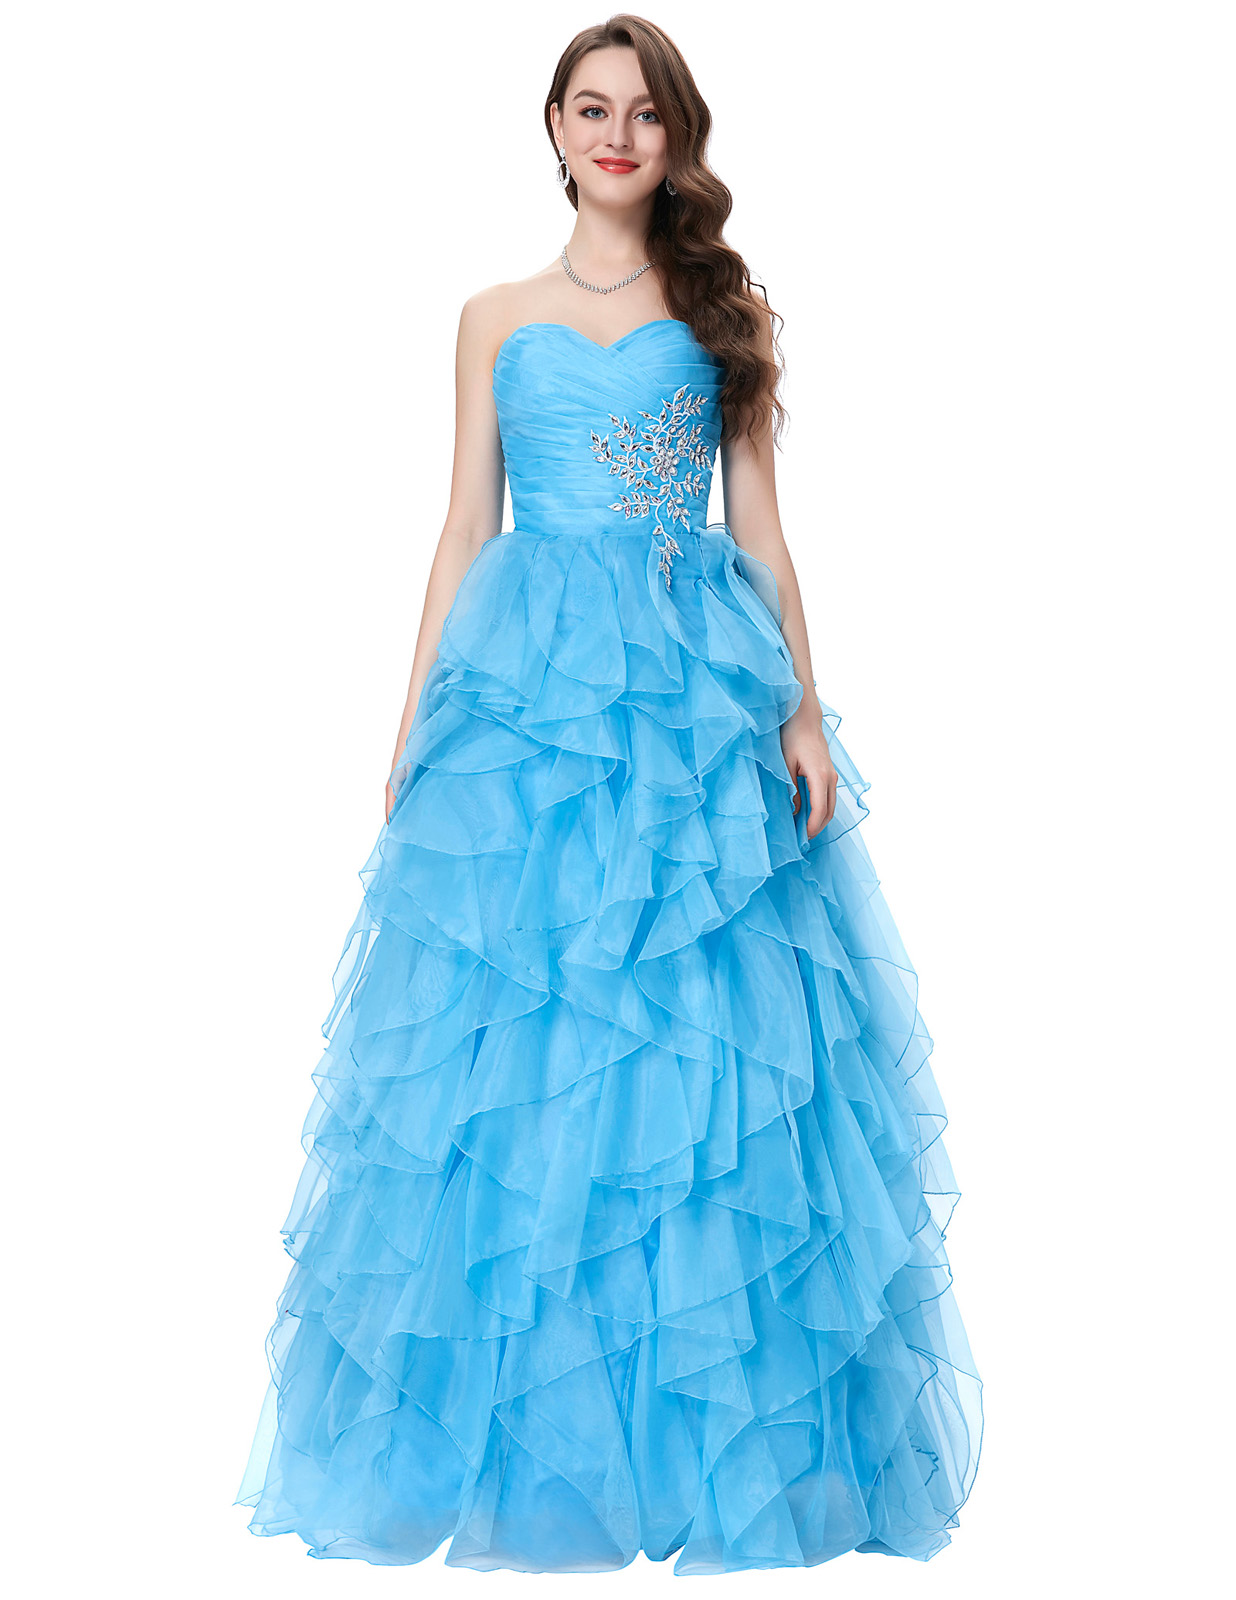 Hot Quinceanera Bridal Dresses Formal Prom Party Ball Gown Pageant ...